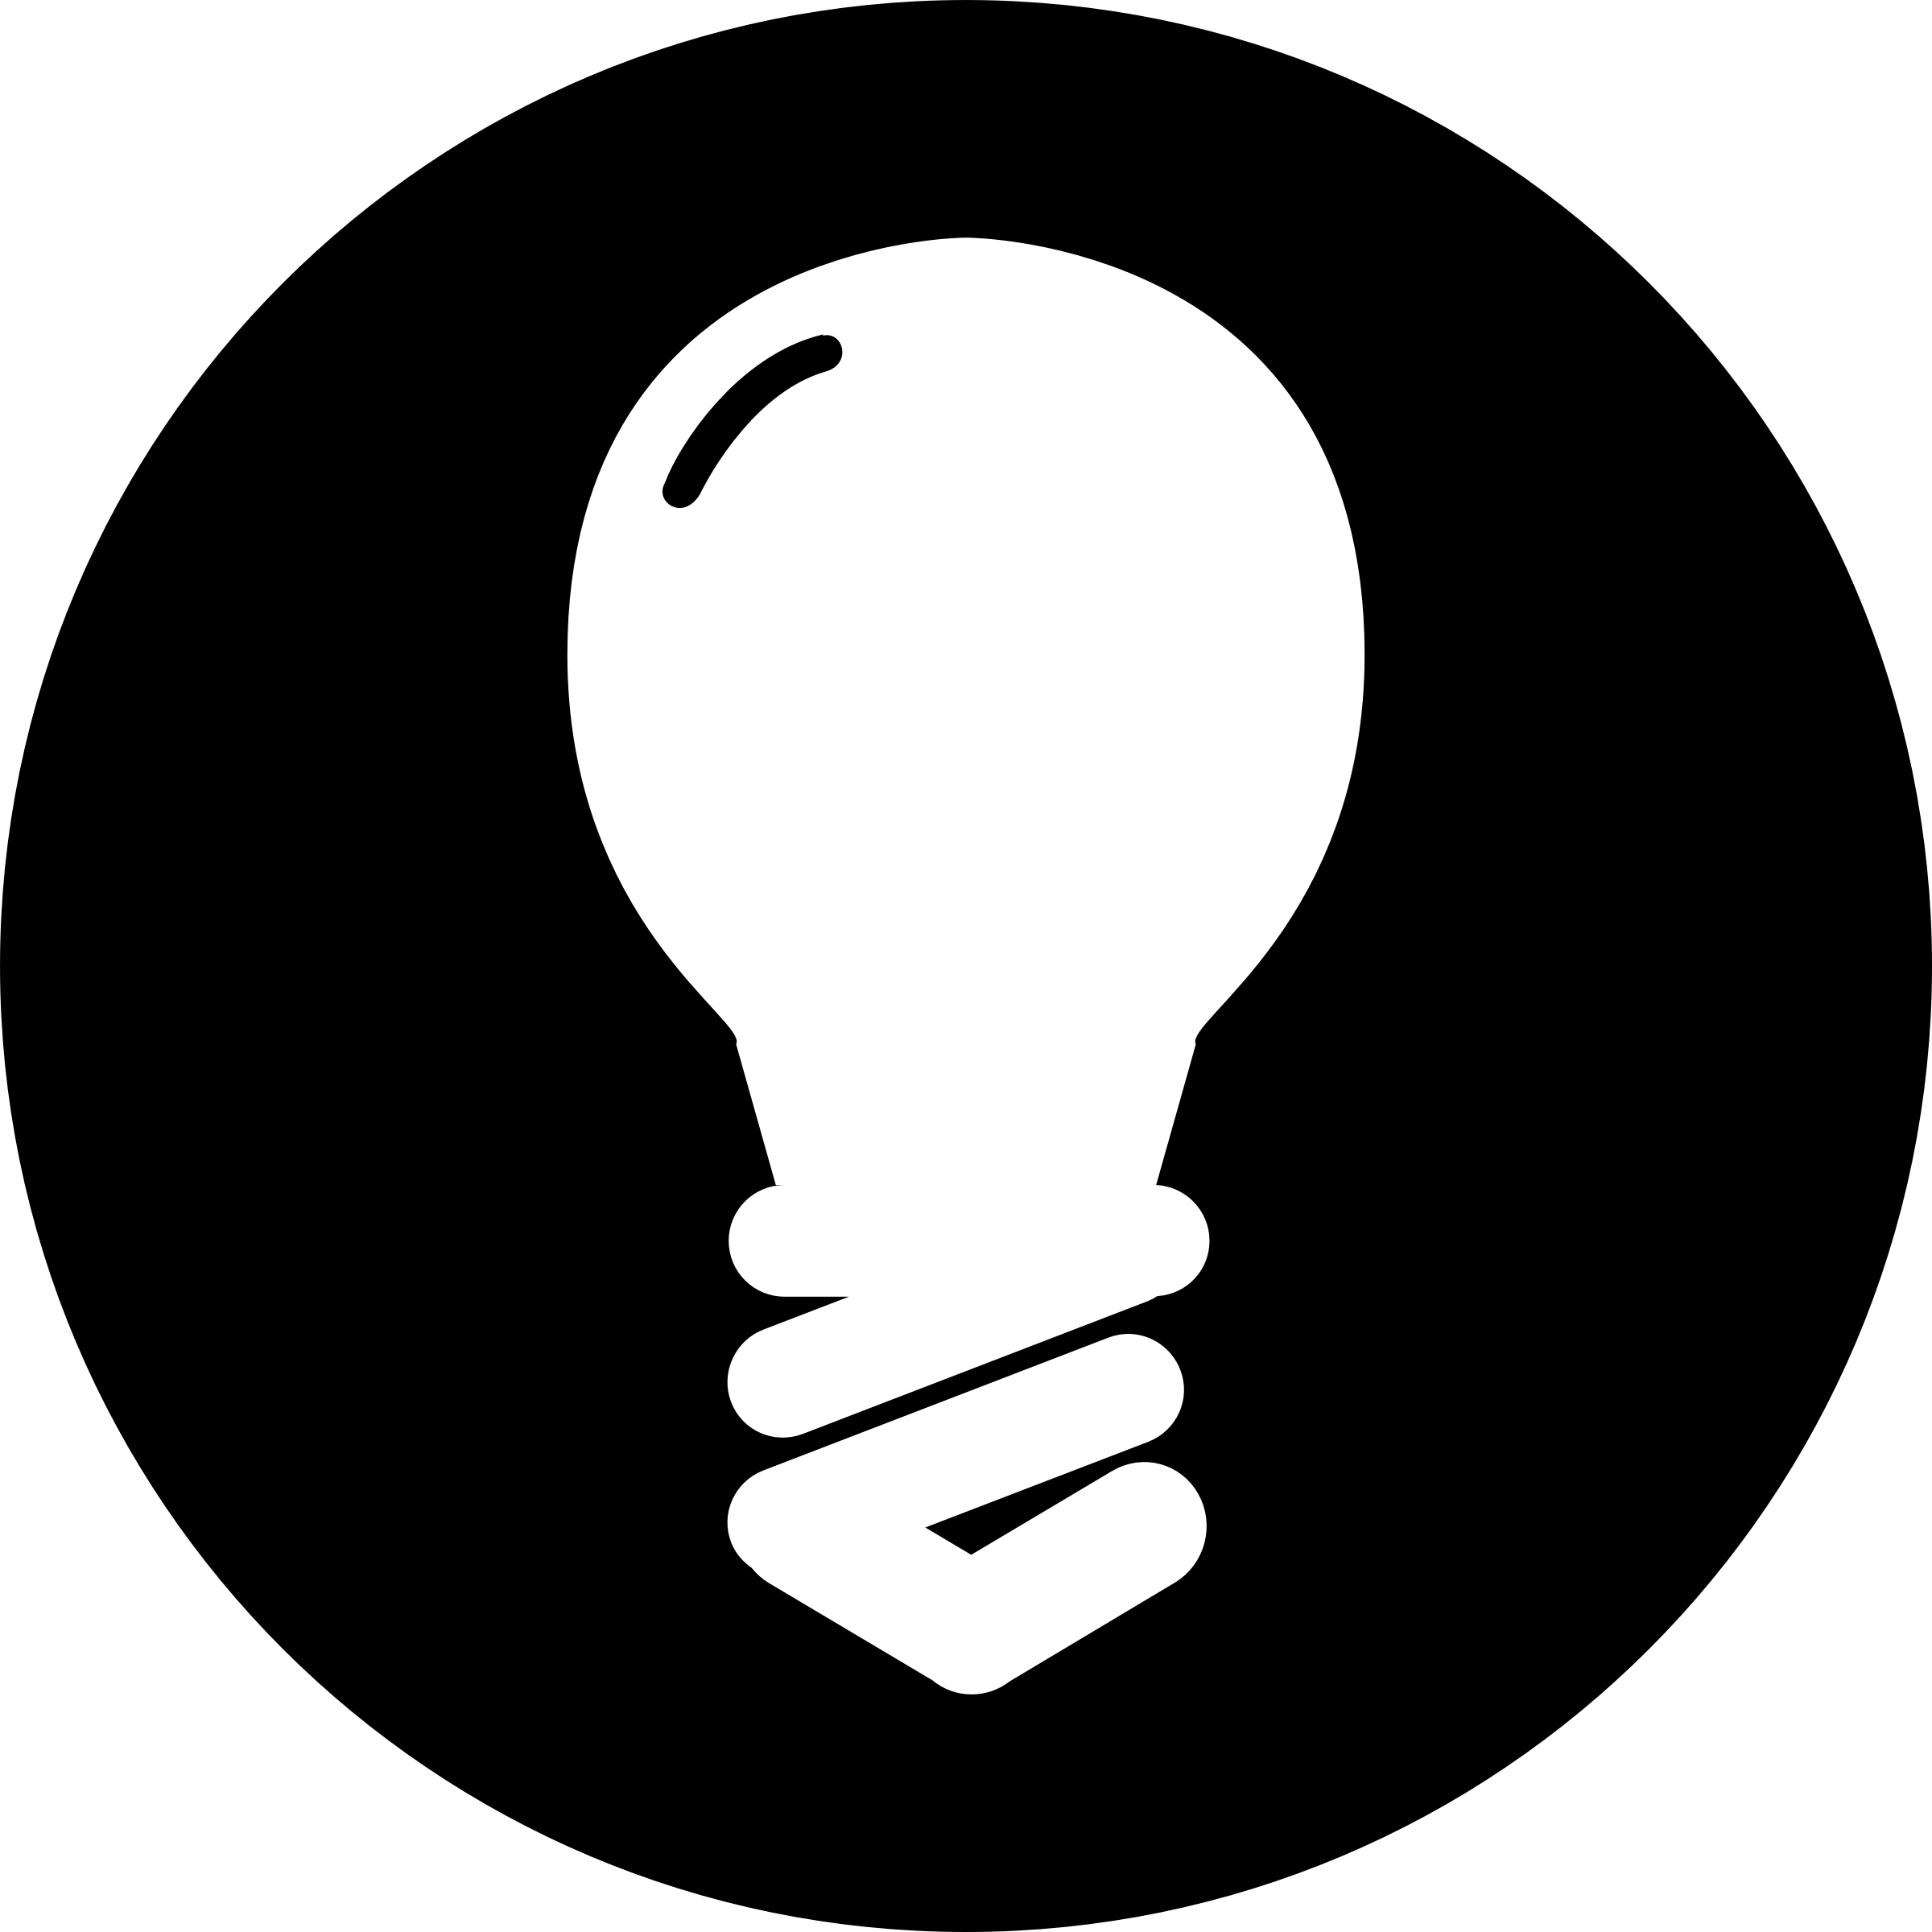 Light bulb clip art black and white. Icon icons png free